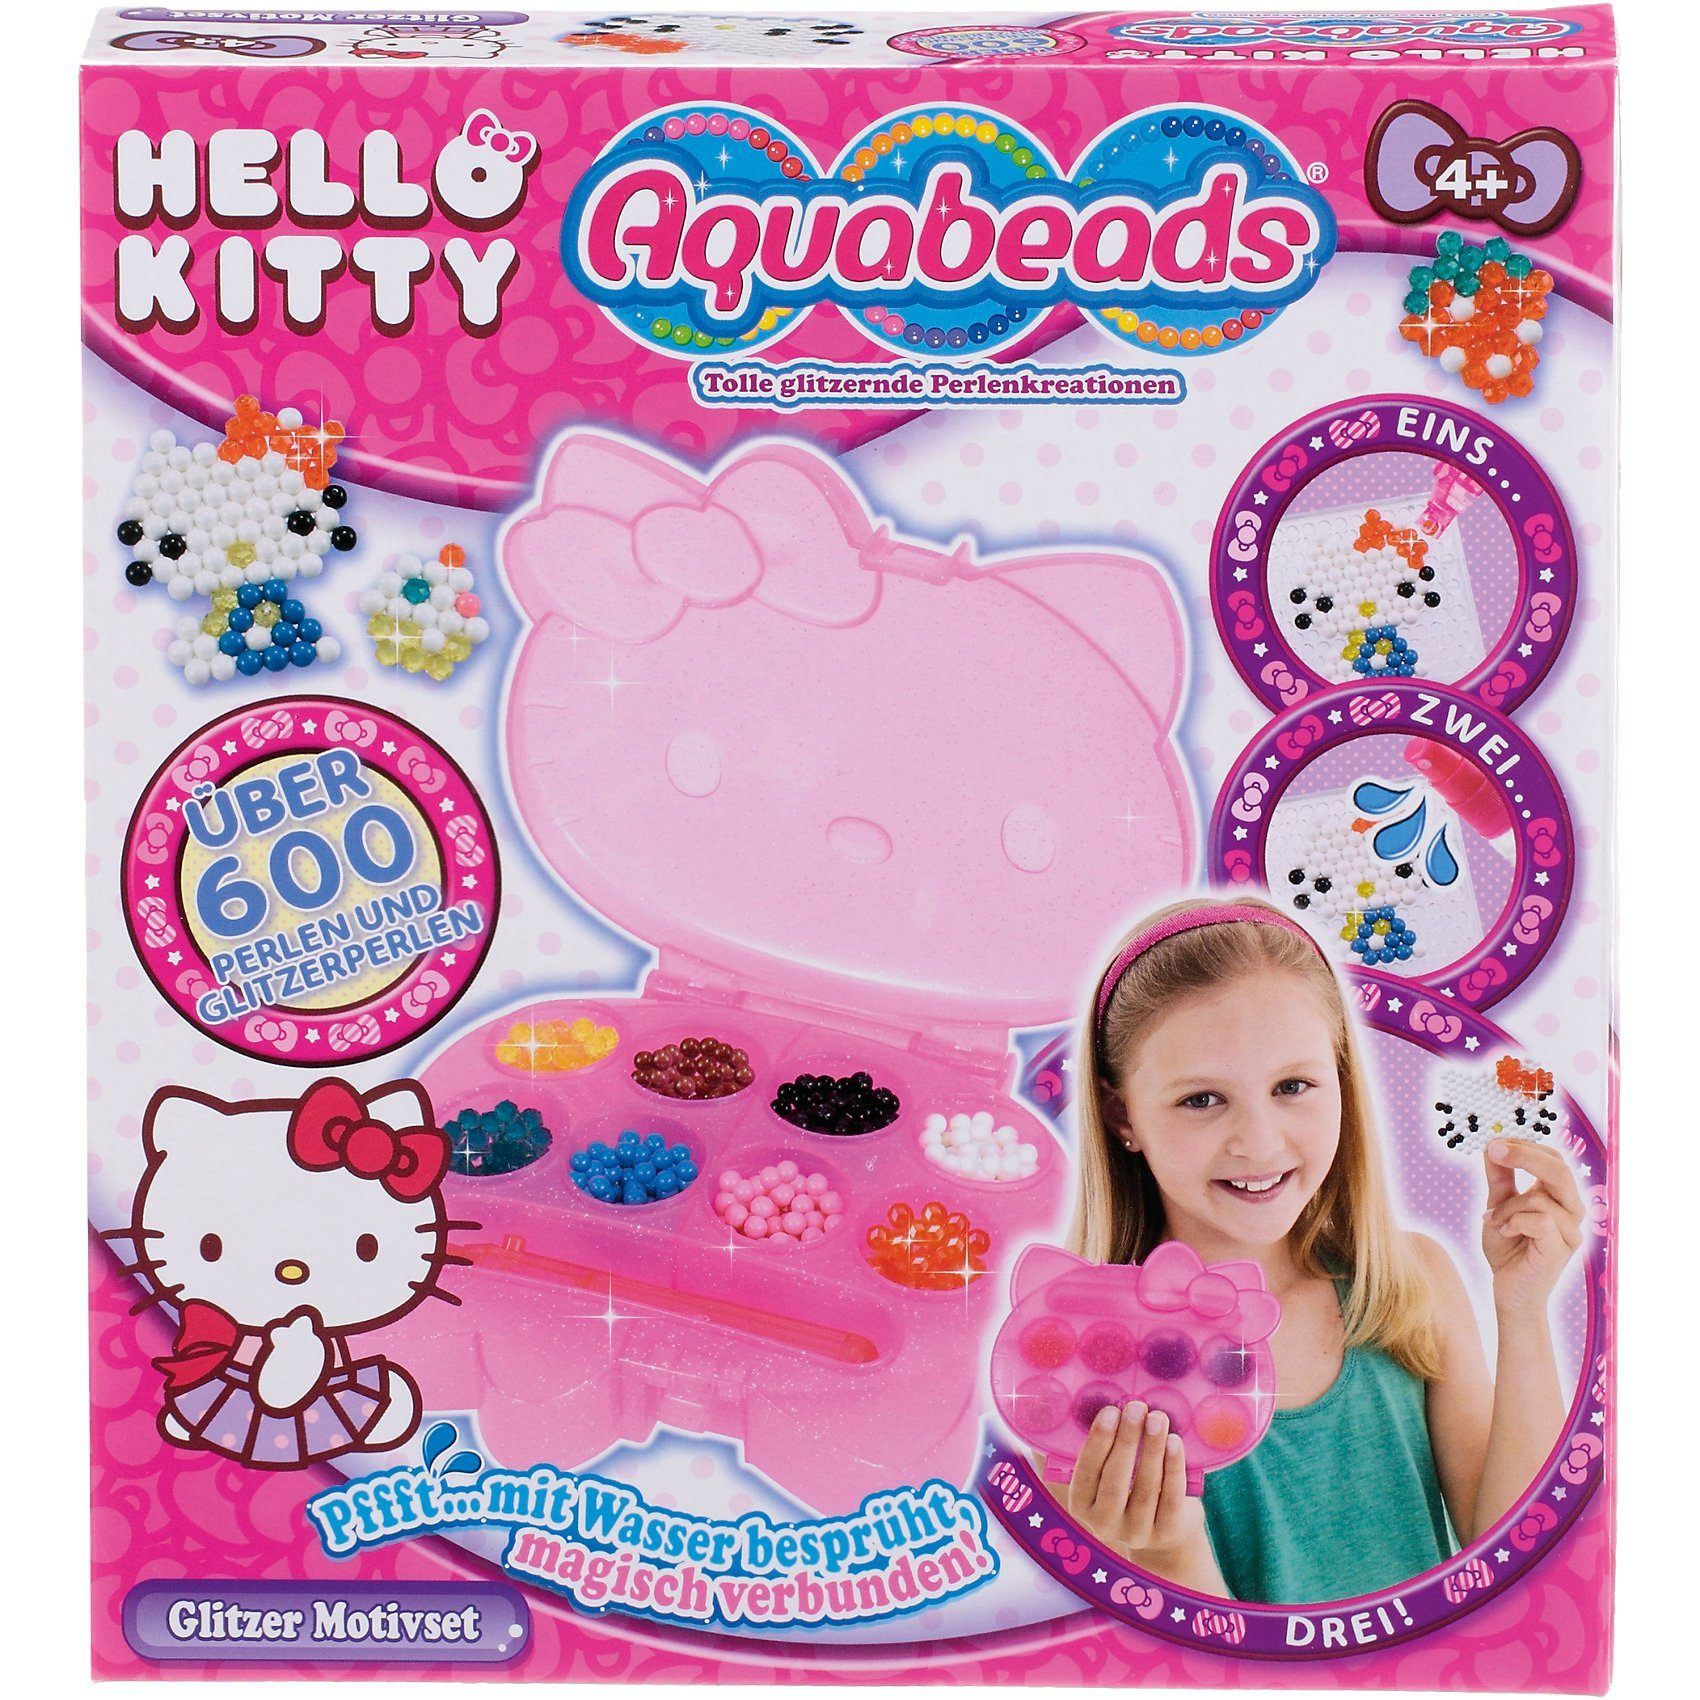 EPOCH Traumwiesen Aquabeads Hello Kitty Glitzer Motivset